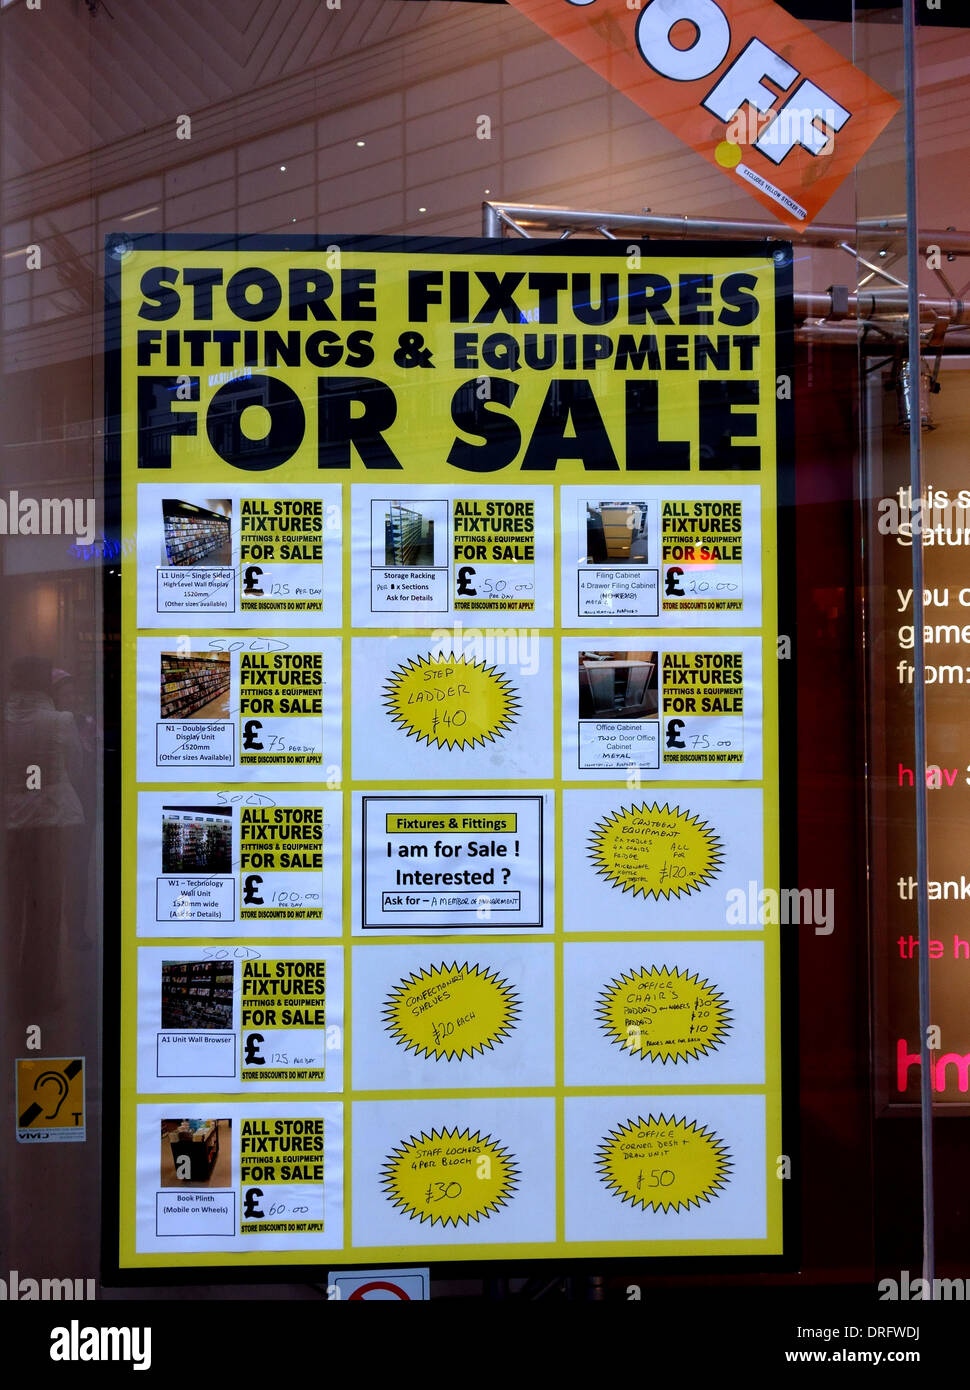 Store closing down sells off fixtures and fittings, London - Stock Image